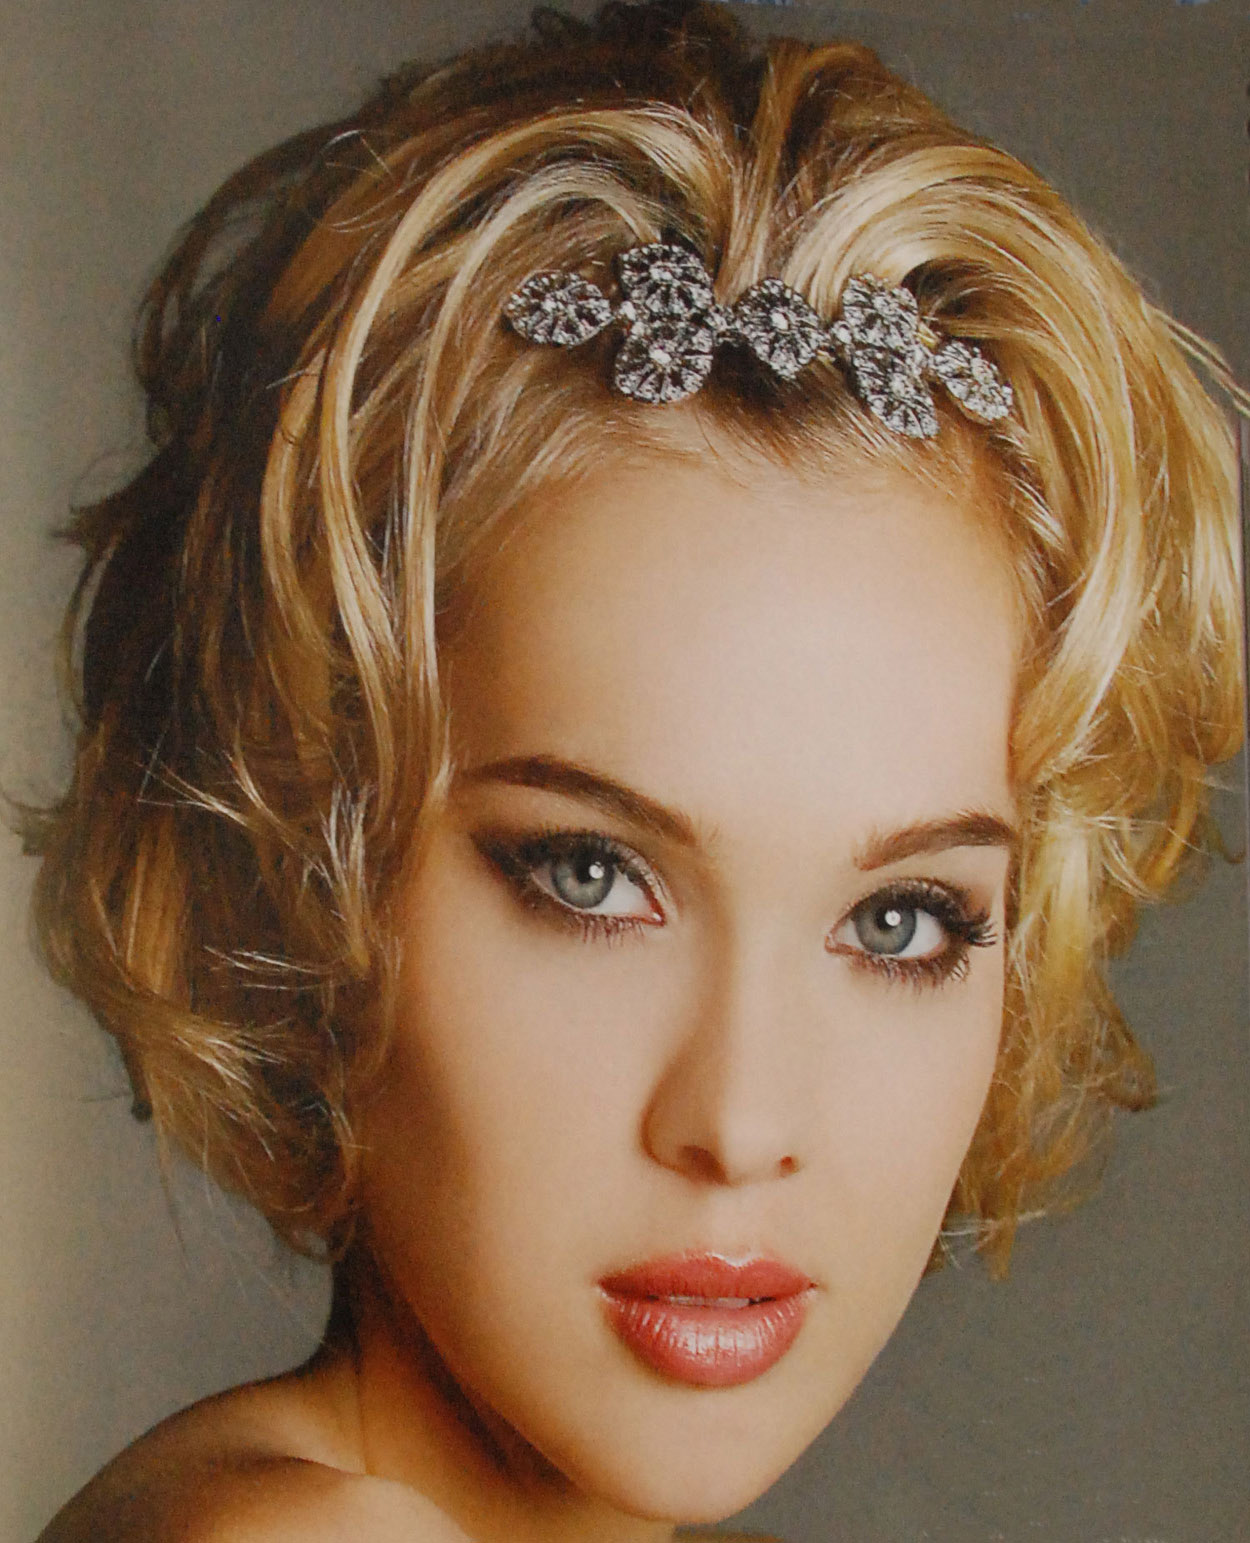 Haircut Styles: Short Hair Style: Short Hairstyles For Girls